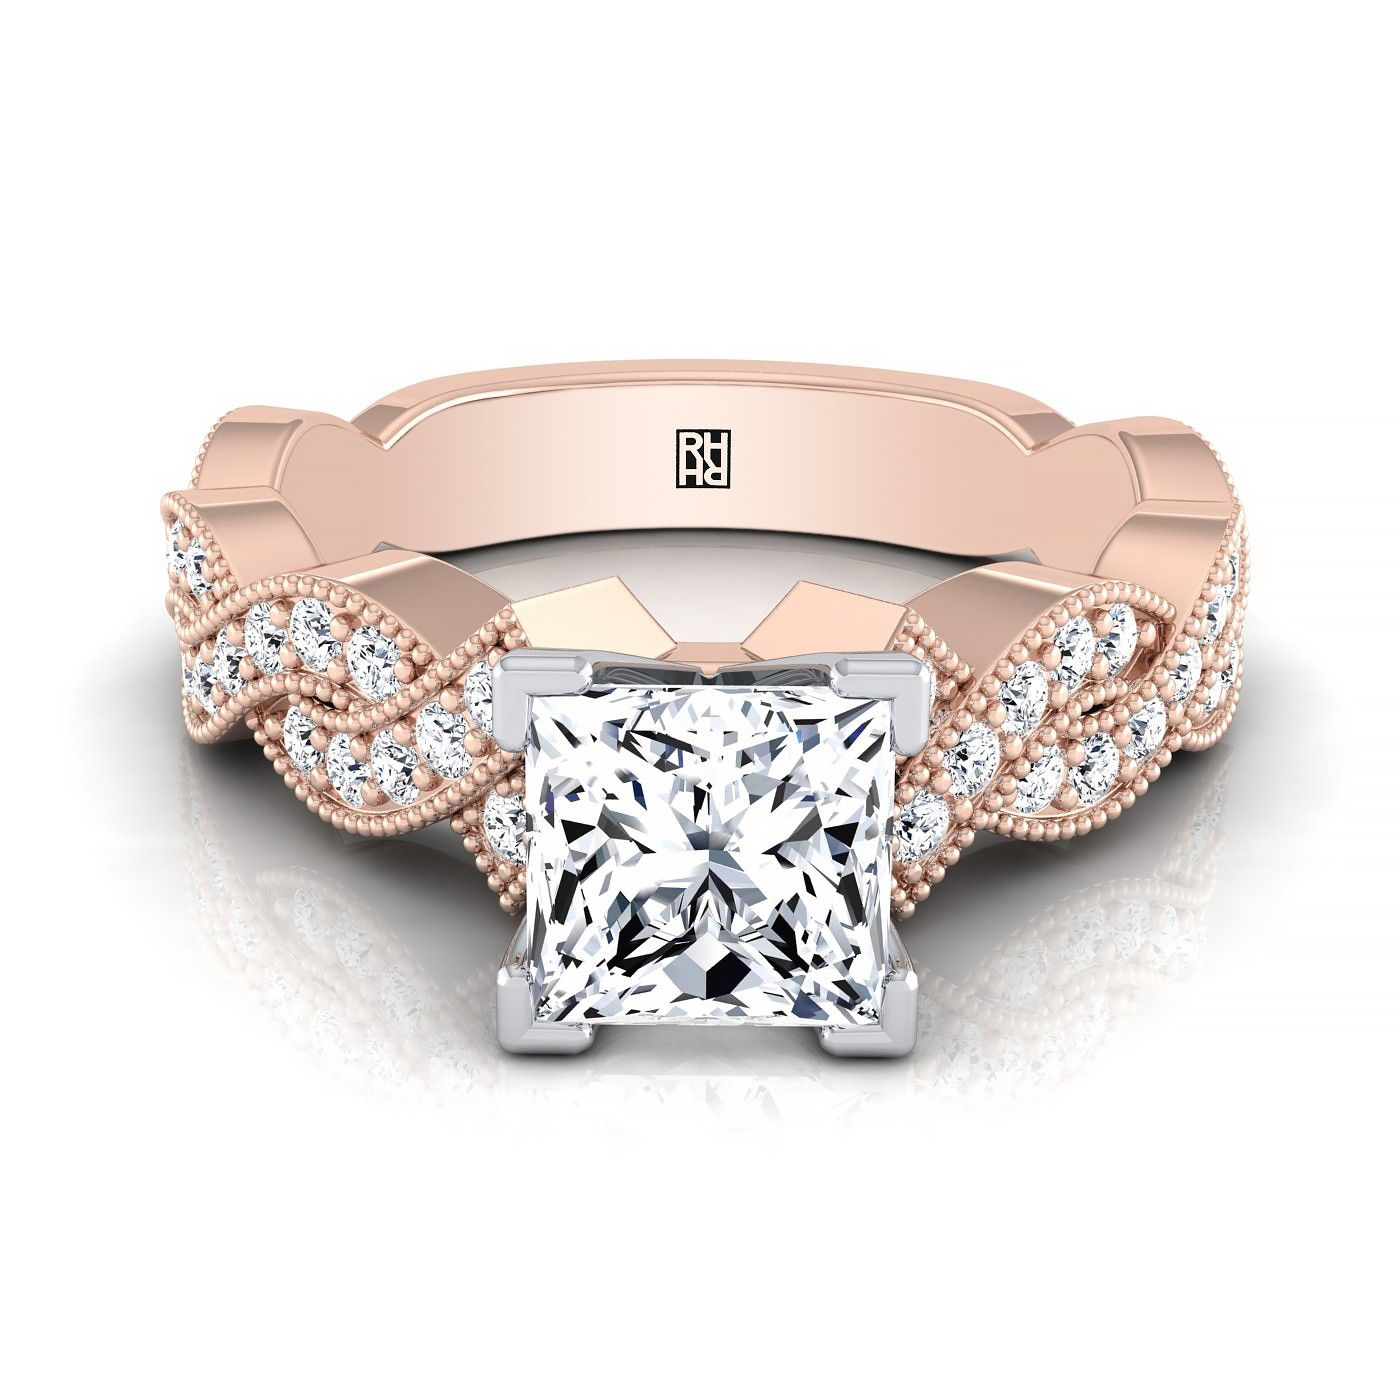 Princess cut diamond engagement ring with twined pave shank and